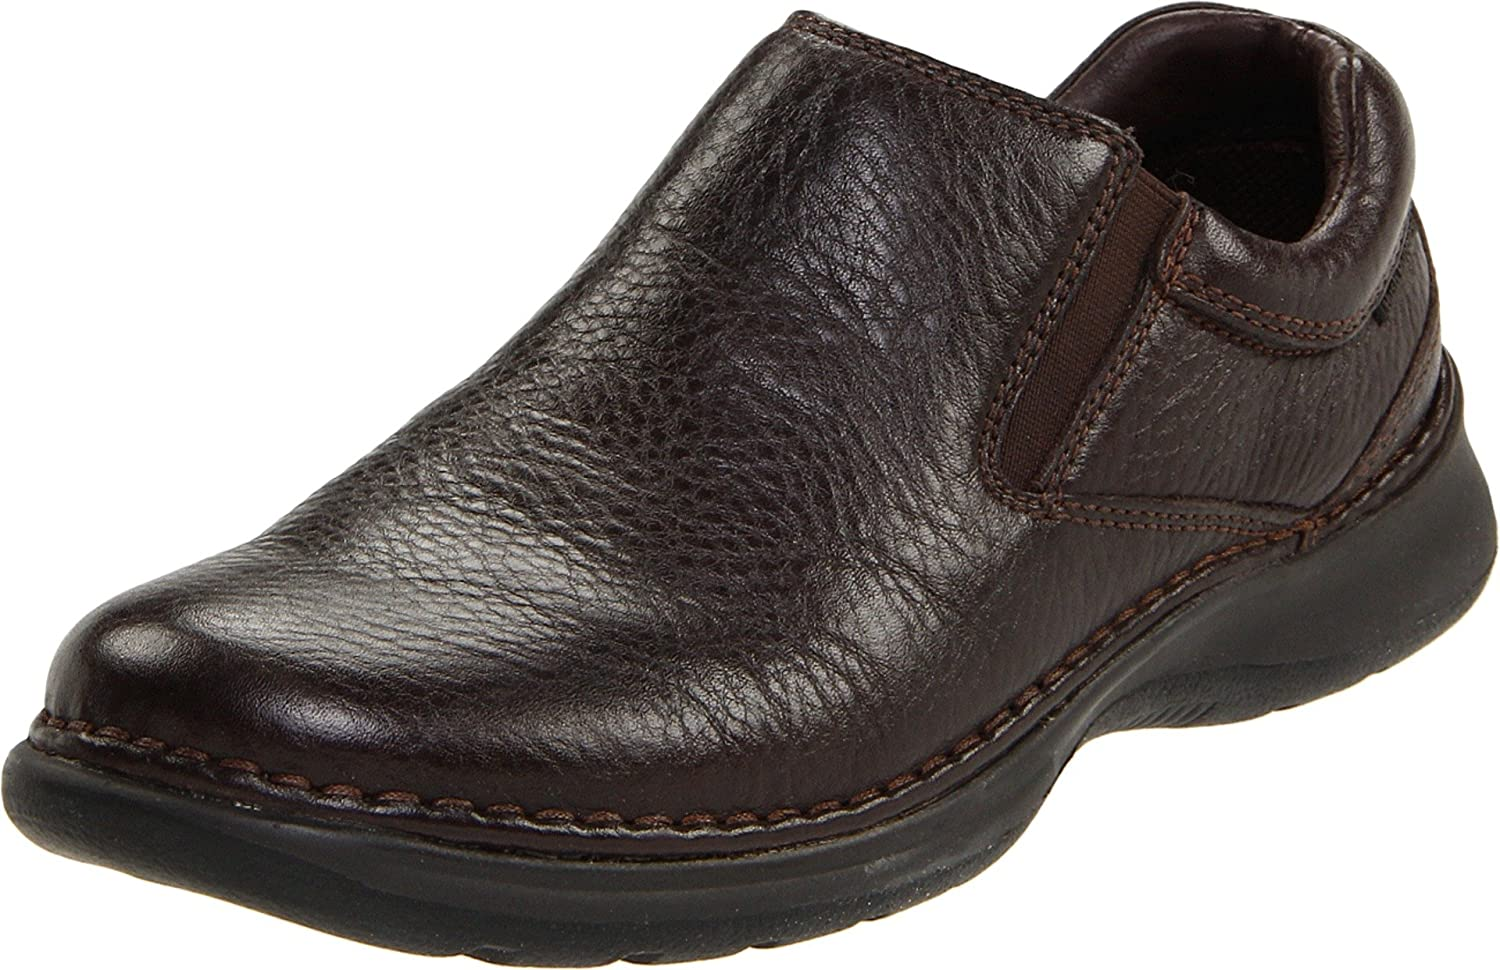 53d5f0aed4e Hush Puppies Men's Lunar II Slip-On Loafer